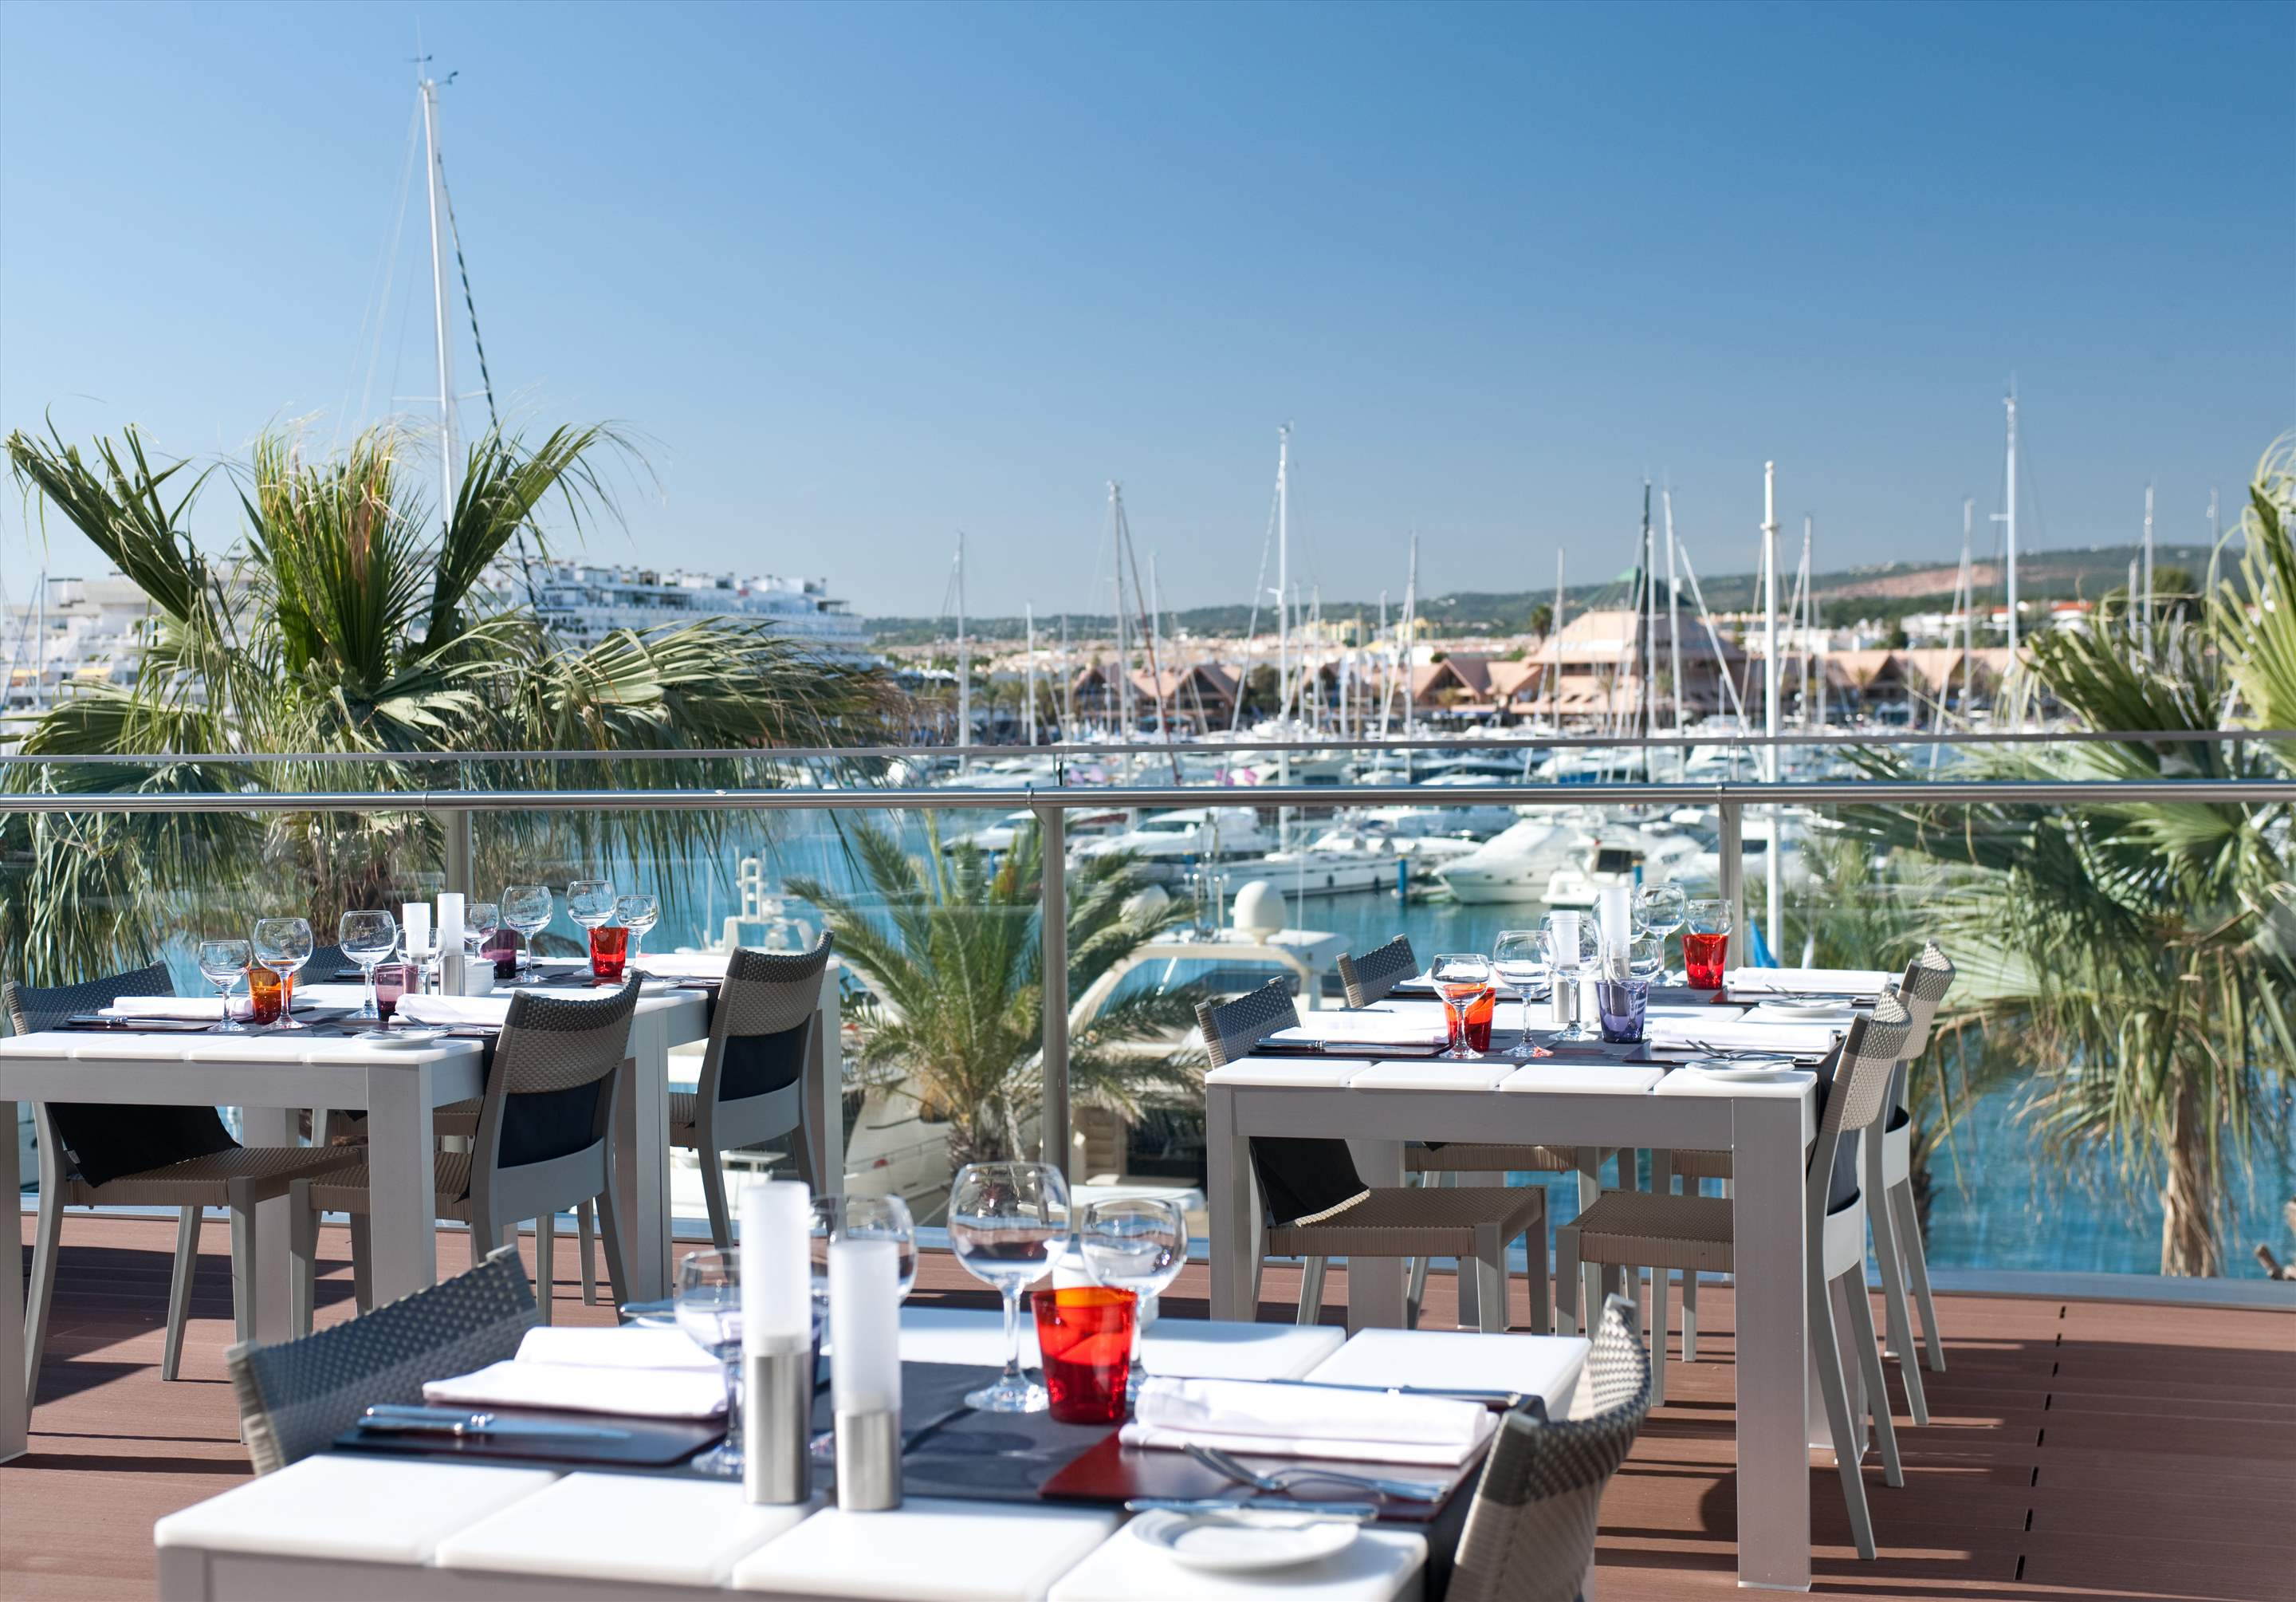 The Residences at Victoria by TIVOLI 3 Bed Apt , 3 bedroom apartment in The Residences at Victoria by TIVOLI, Algarve Photo #18